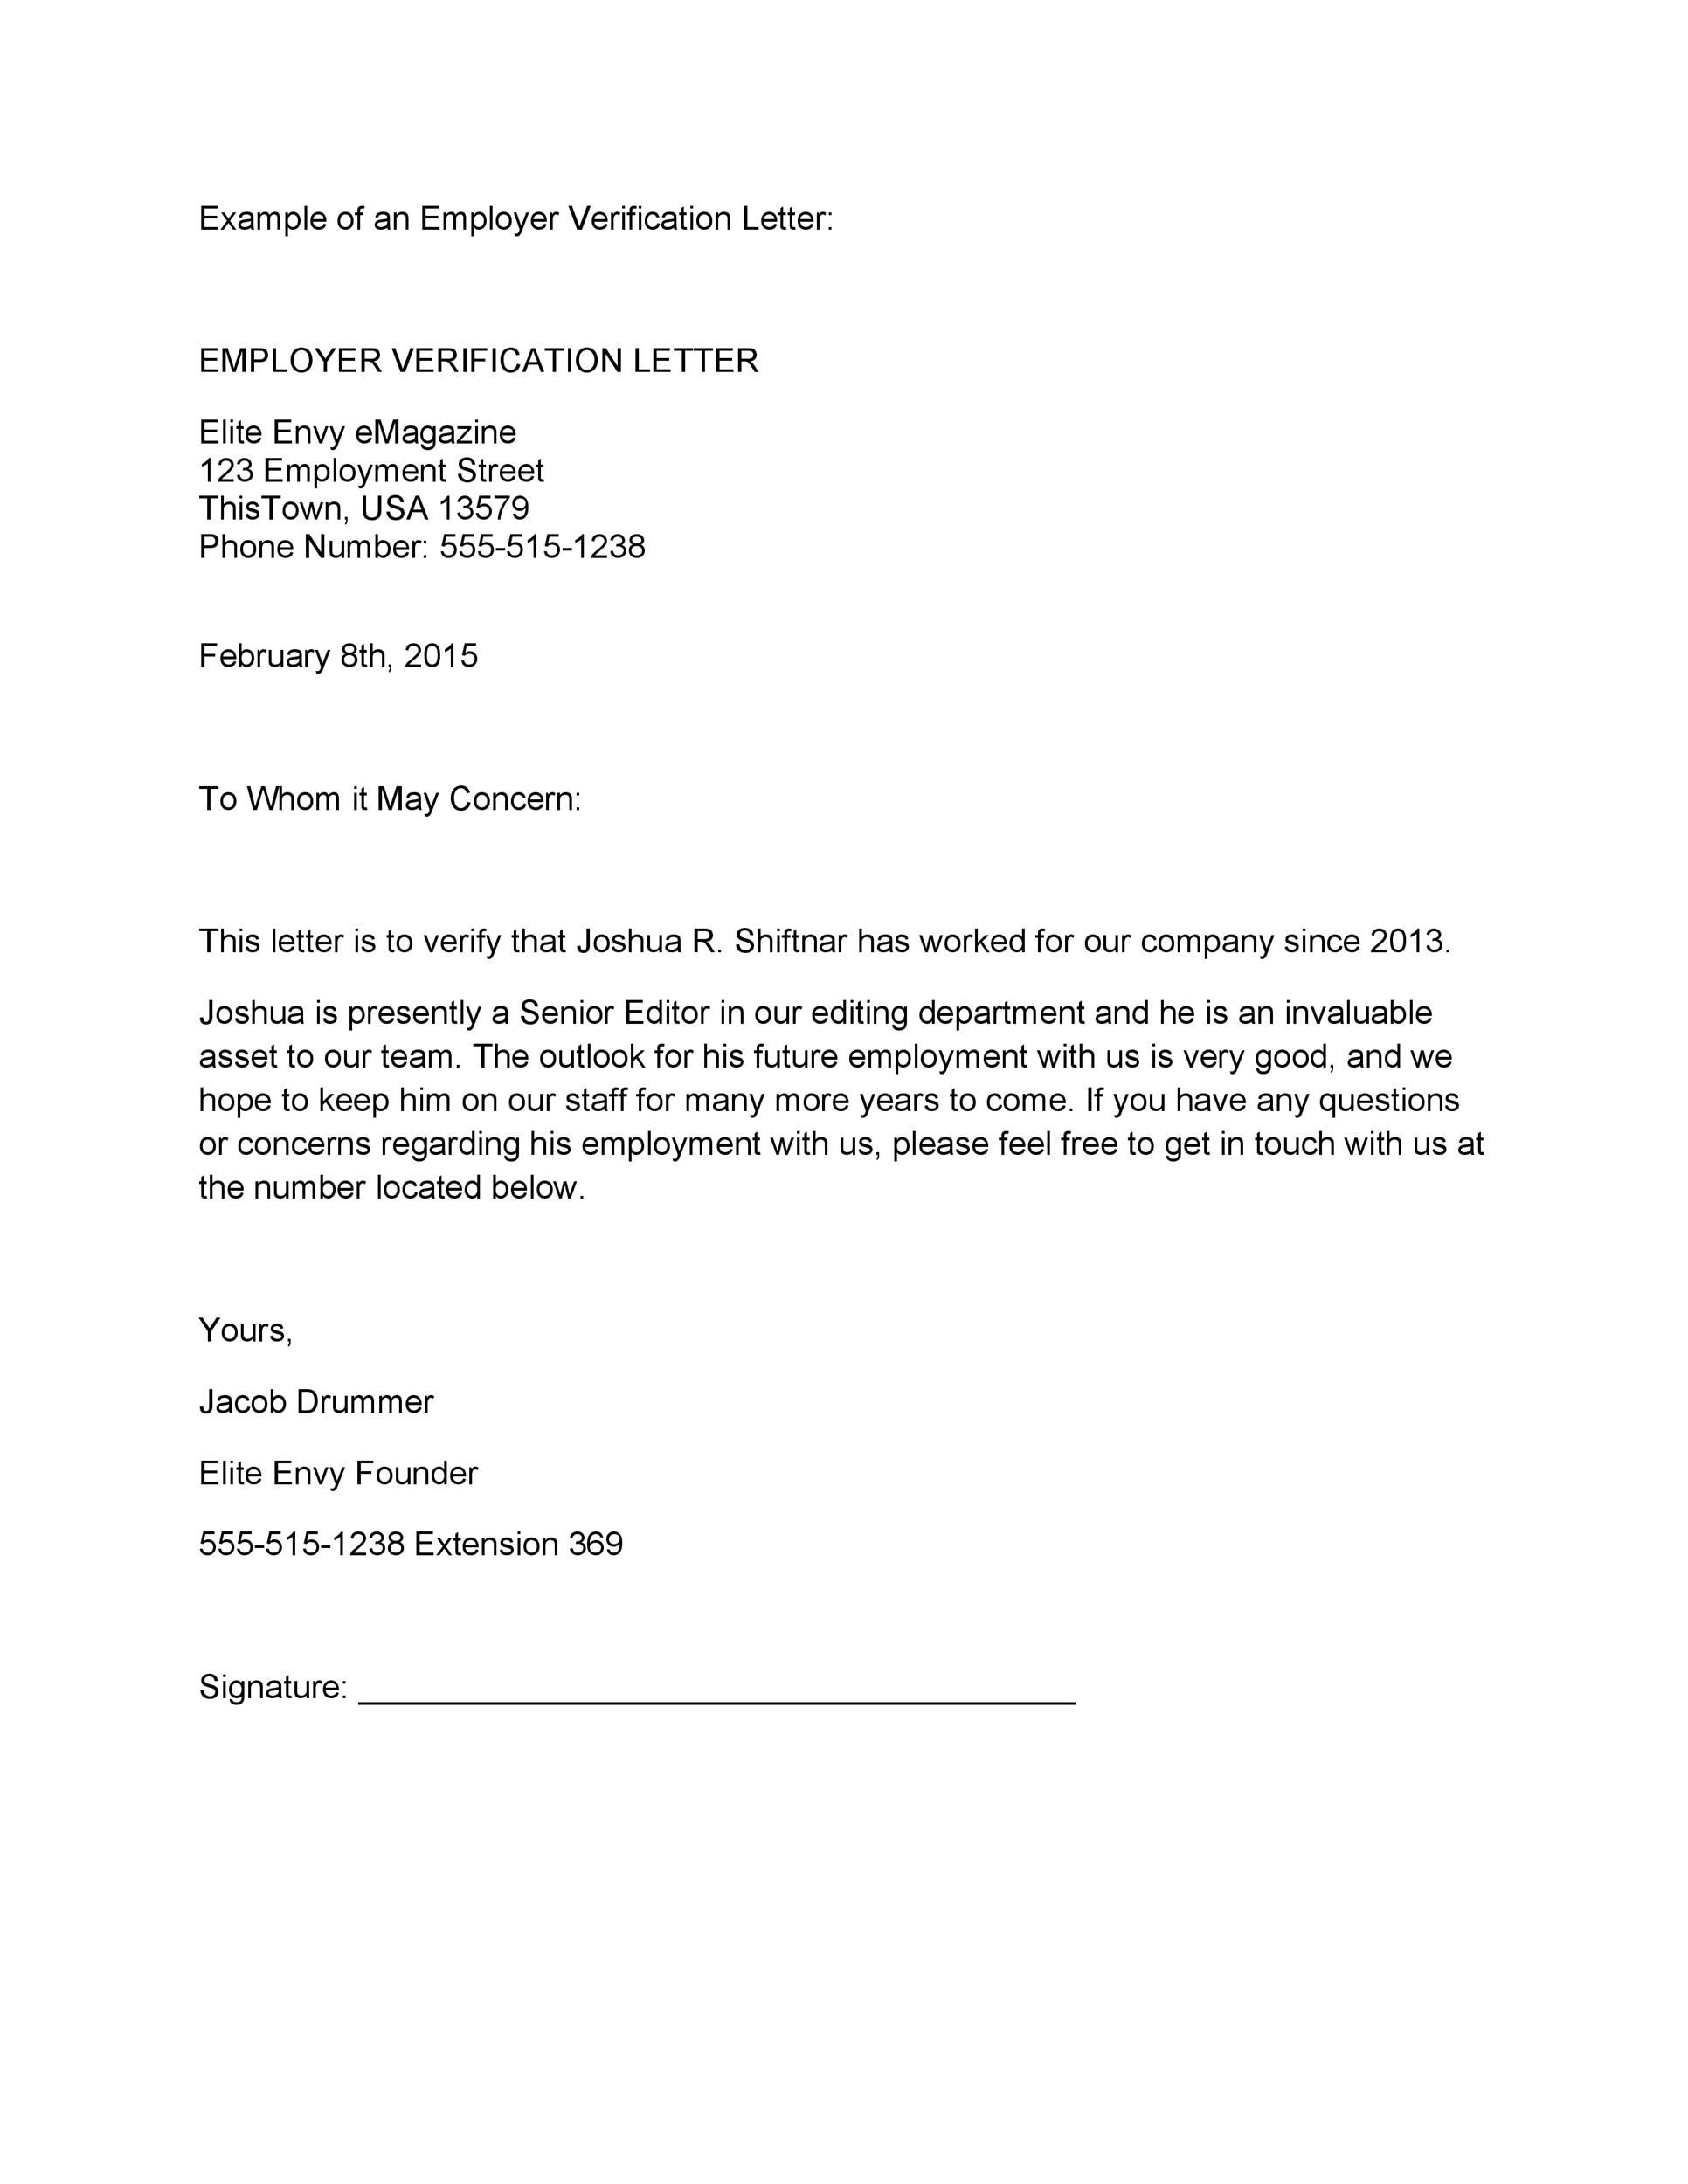 006 Awesome Letter Of Employment Template Concept  Confirmation Canada For MortgageFull